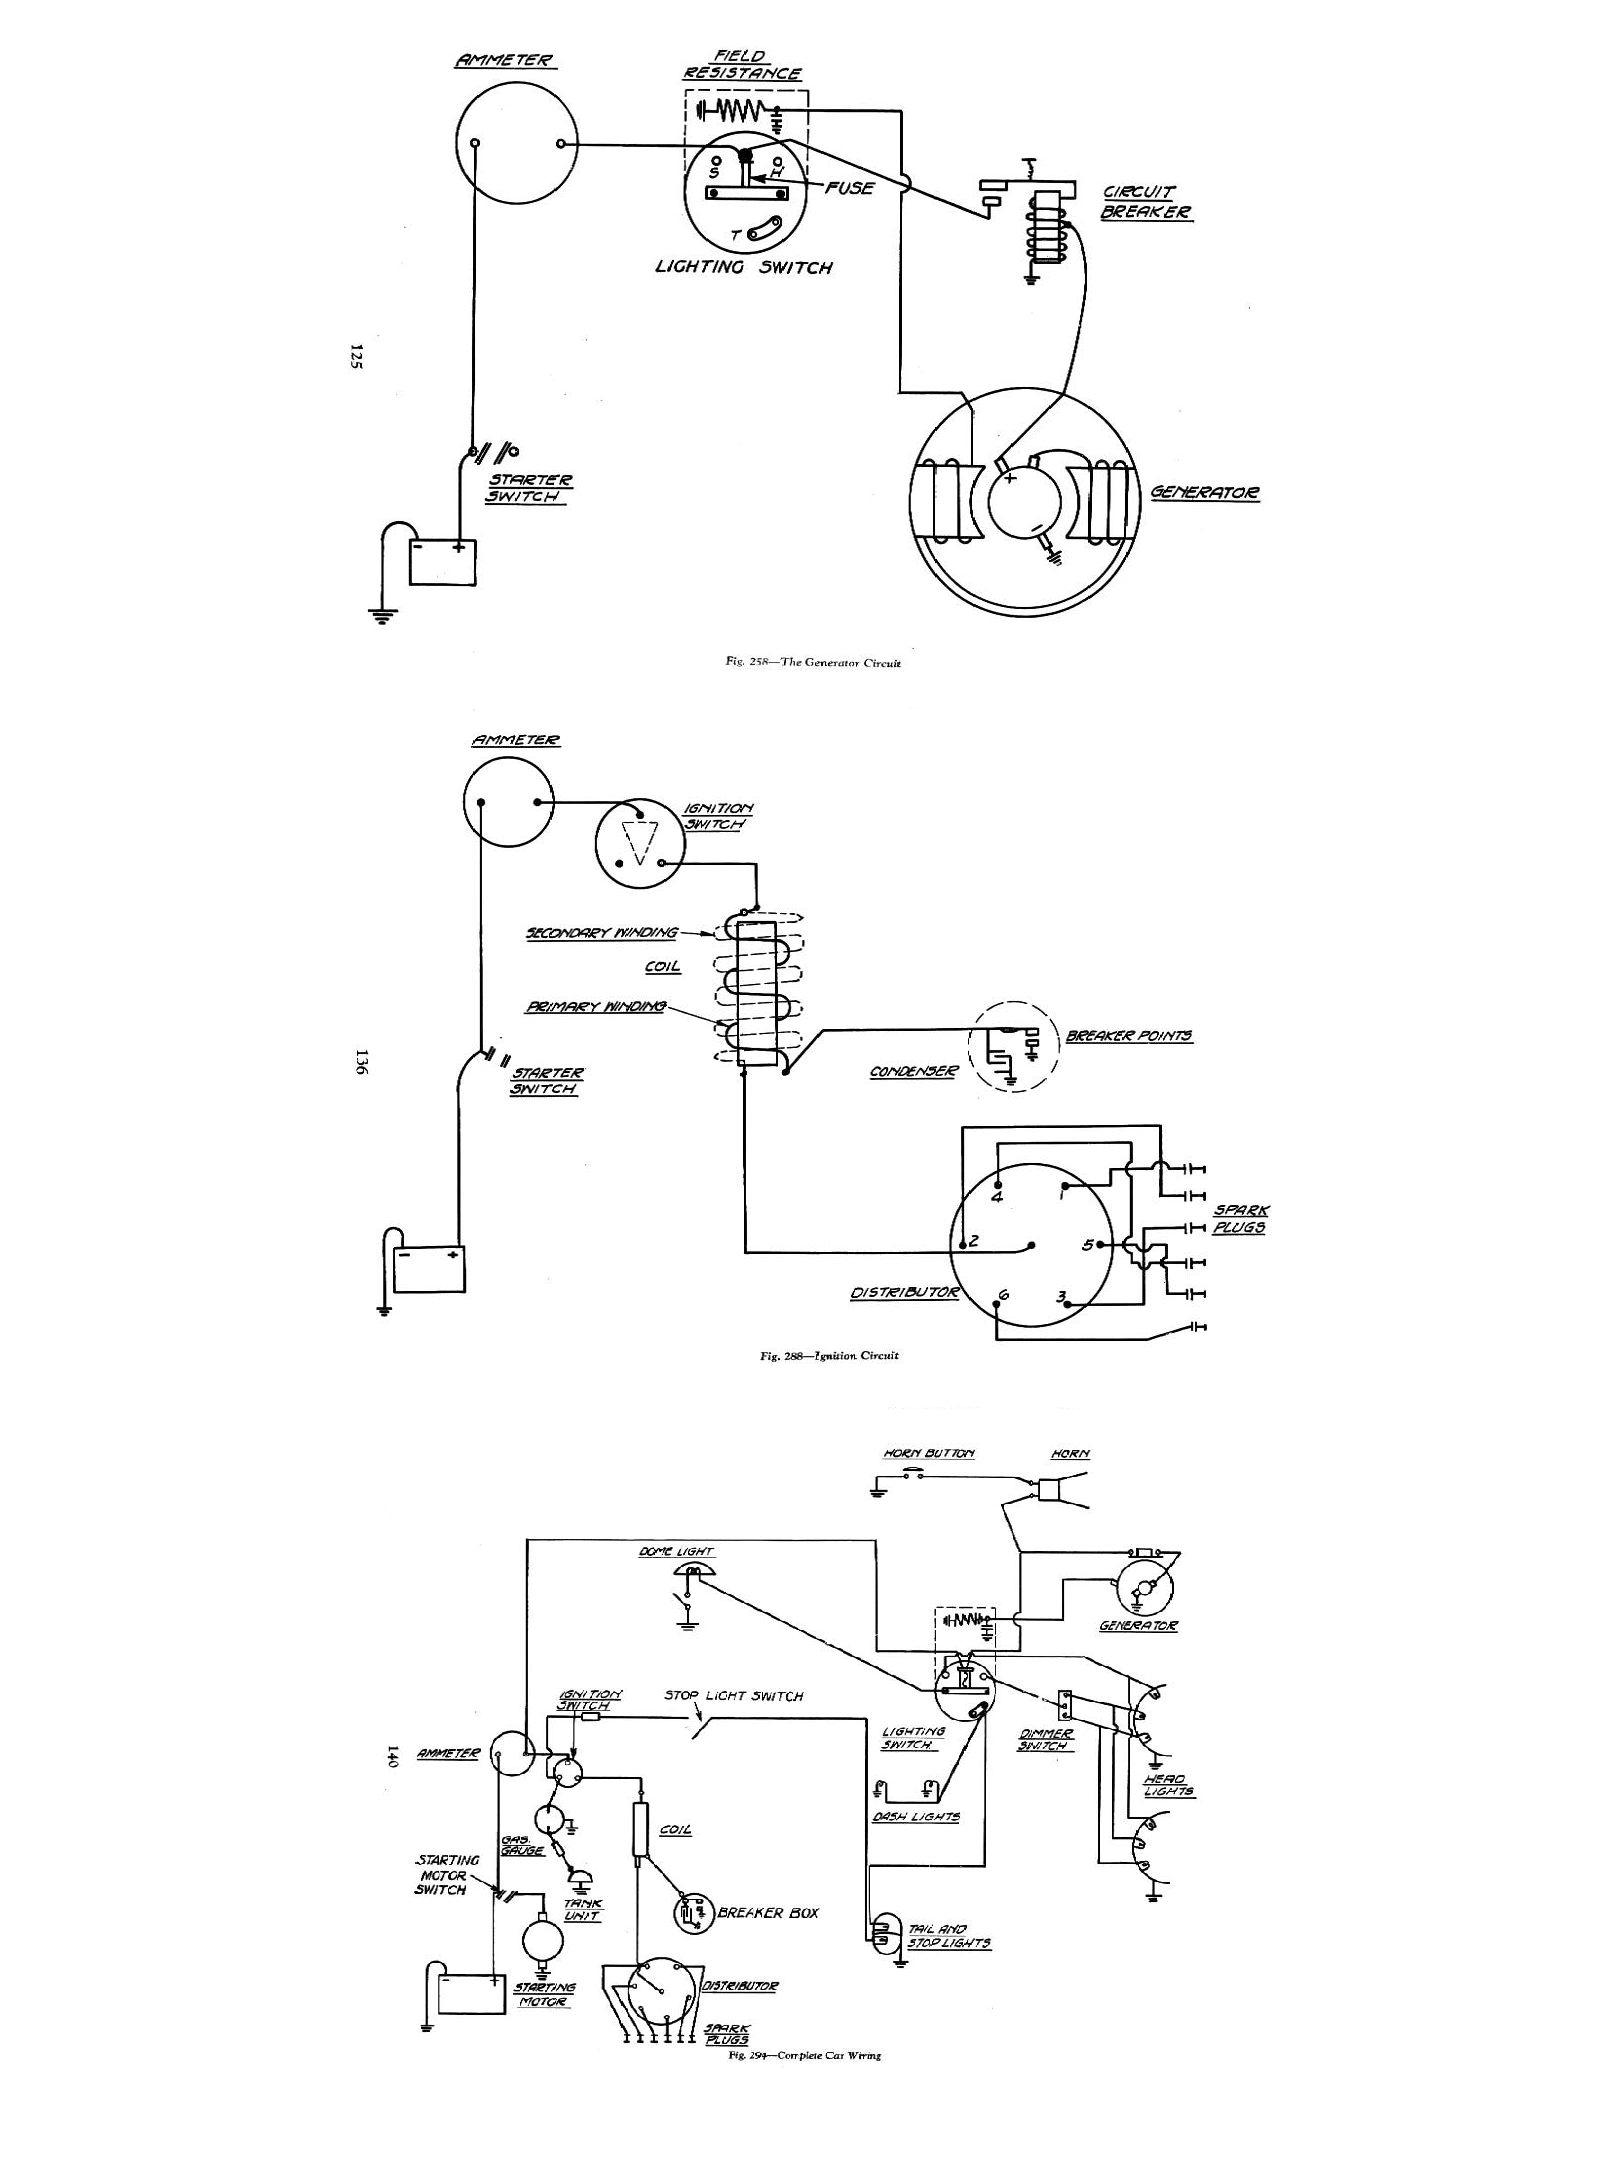 Wiring Diagram ~ Ford 8niring Old Ge Refrigerator Wiring Diagram ...